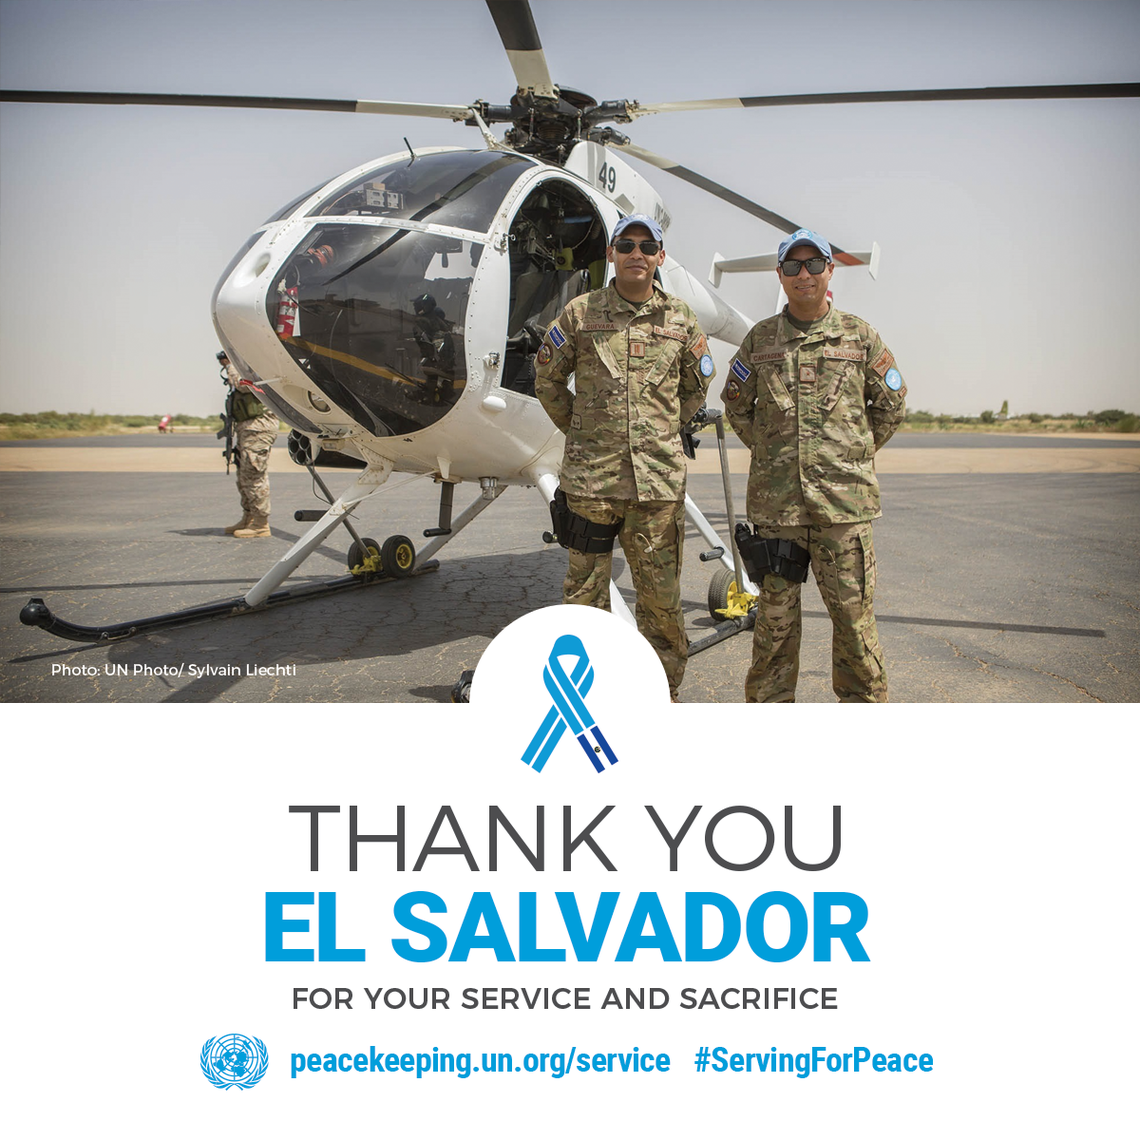 Helicopter pilots from El Salvador serving in Mali